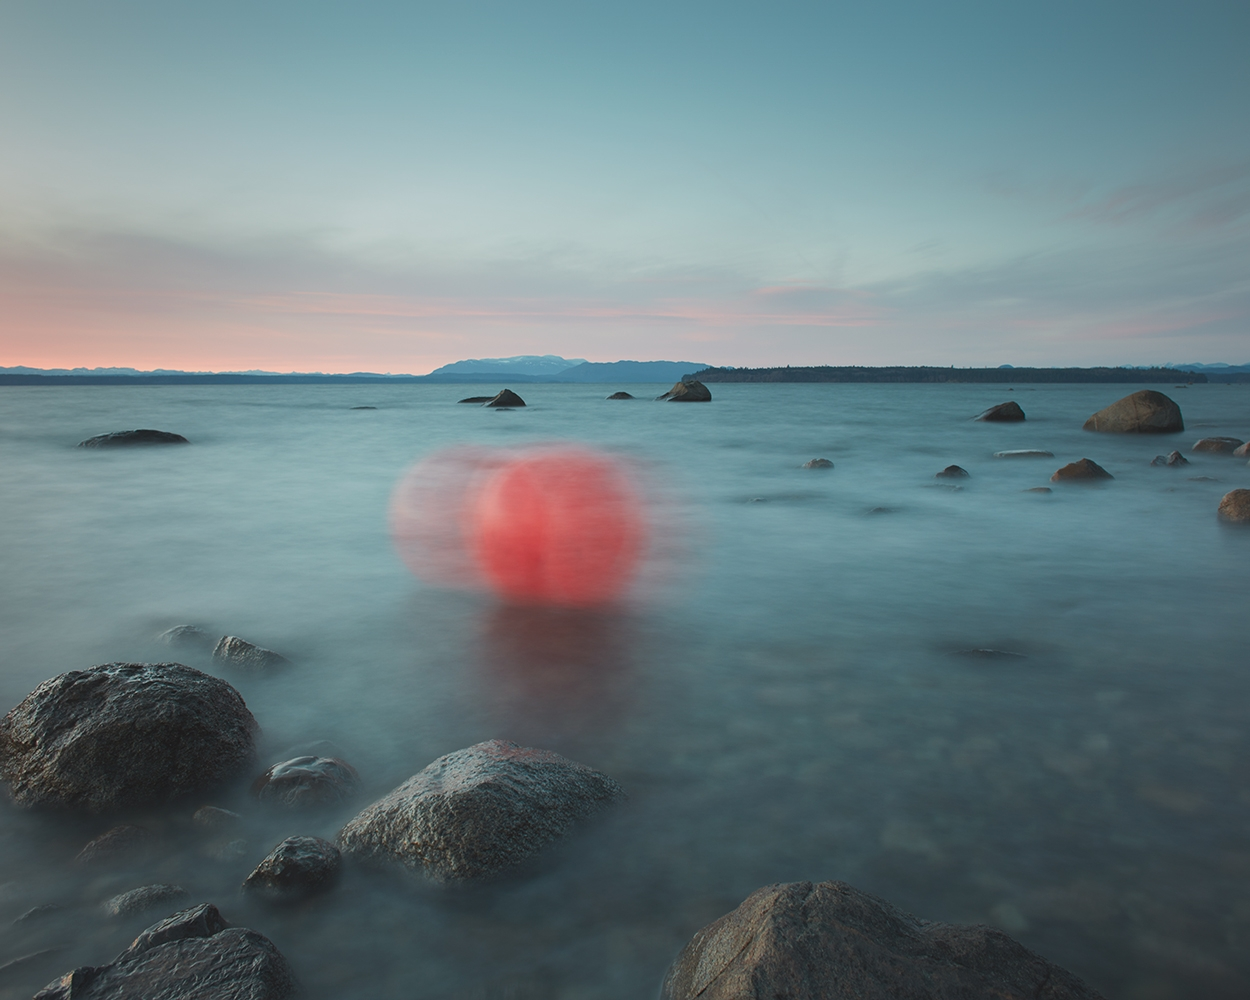 Unknown Entities - Unraveling Red in Veiled Blue, Fishing Buoy  by David Ellingsen